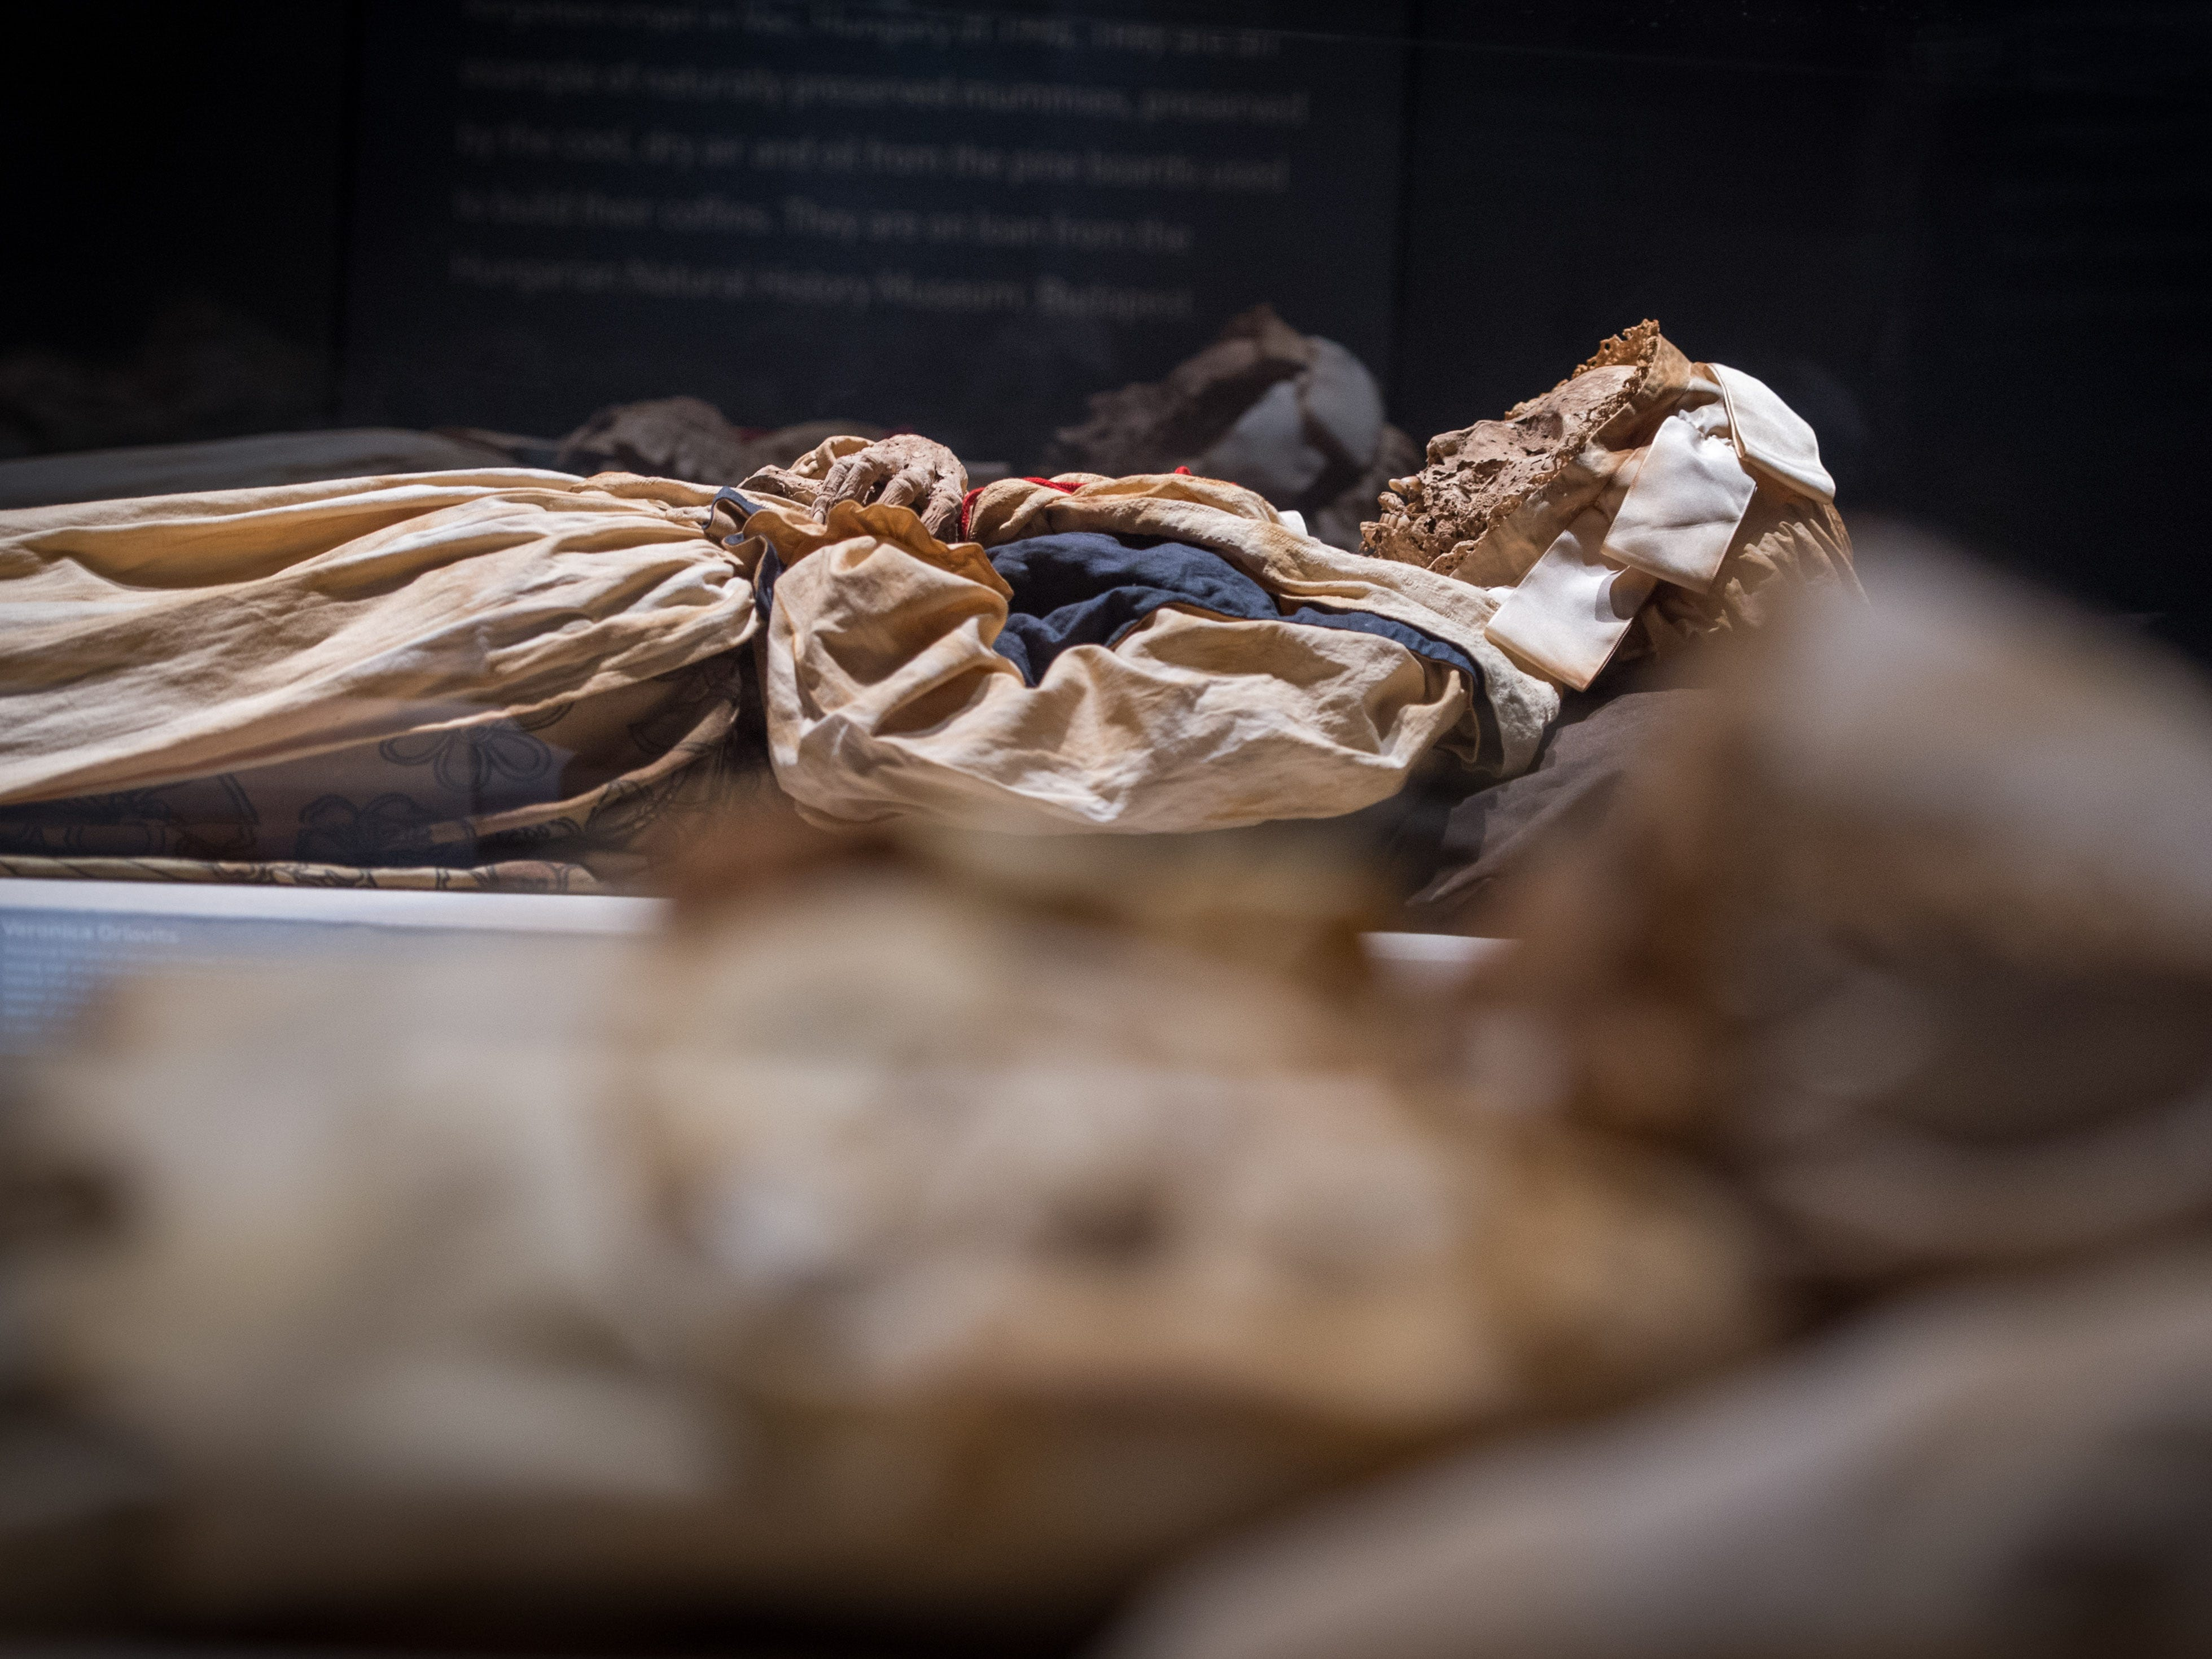 Veronica Olovits is a member of the Orlovits family display which is part of the Mummies of the World: The Exhibition at the Arizona Science Center.